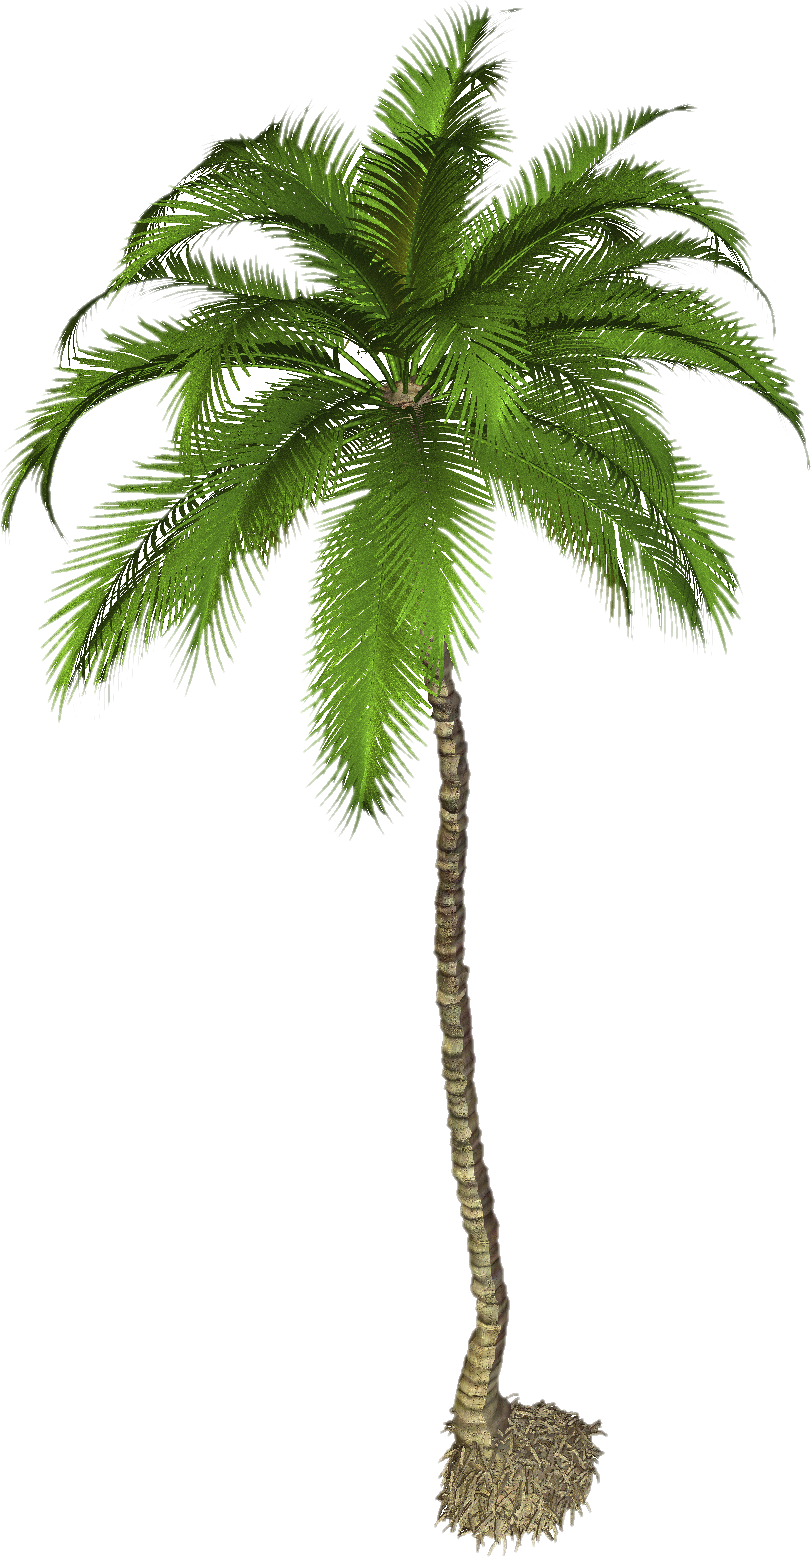 download palm tree png pic png image pngimg #11004